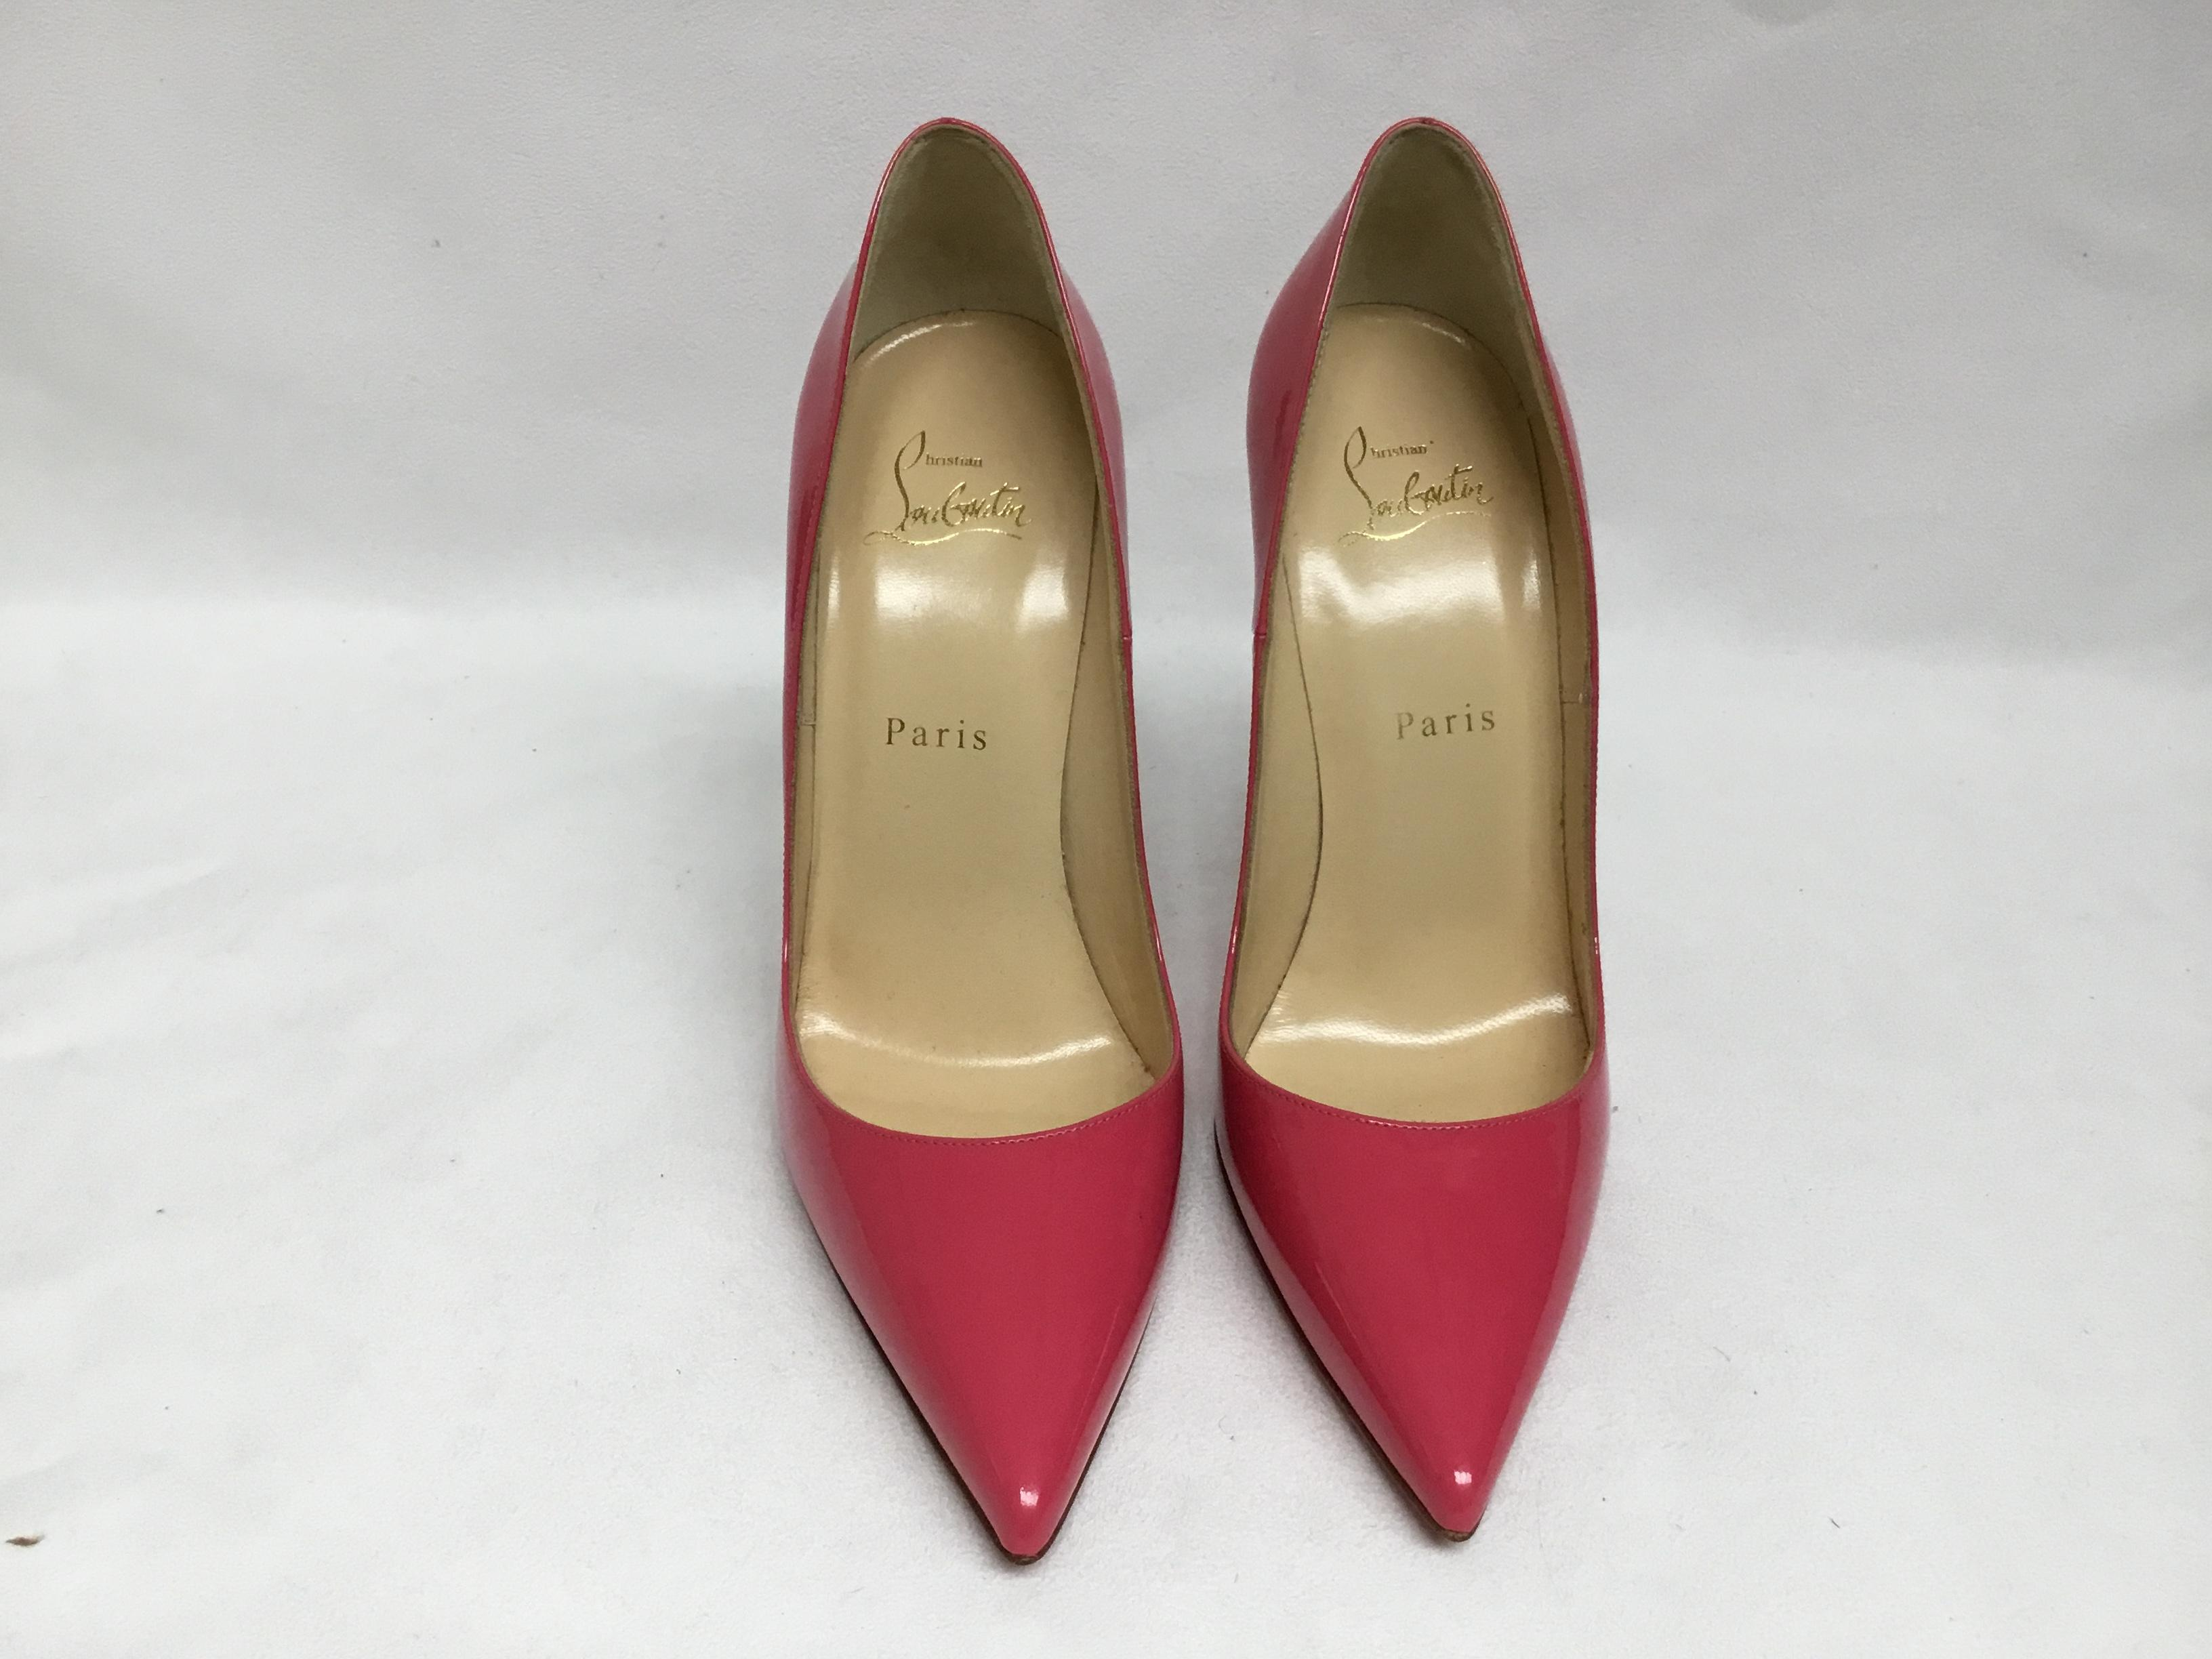 7561441b9556 ... Men s Women s   Christian Christian Christian Louboutin Pink Patent  Leather So Kate Pumps Size EU ...